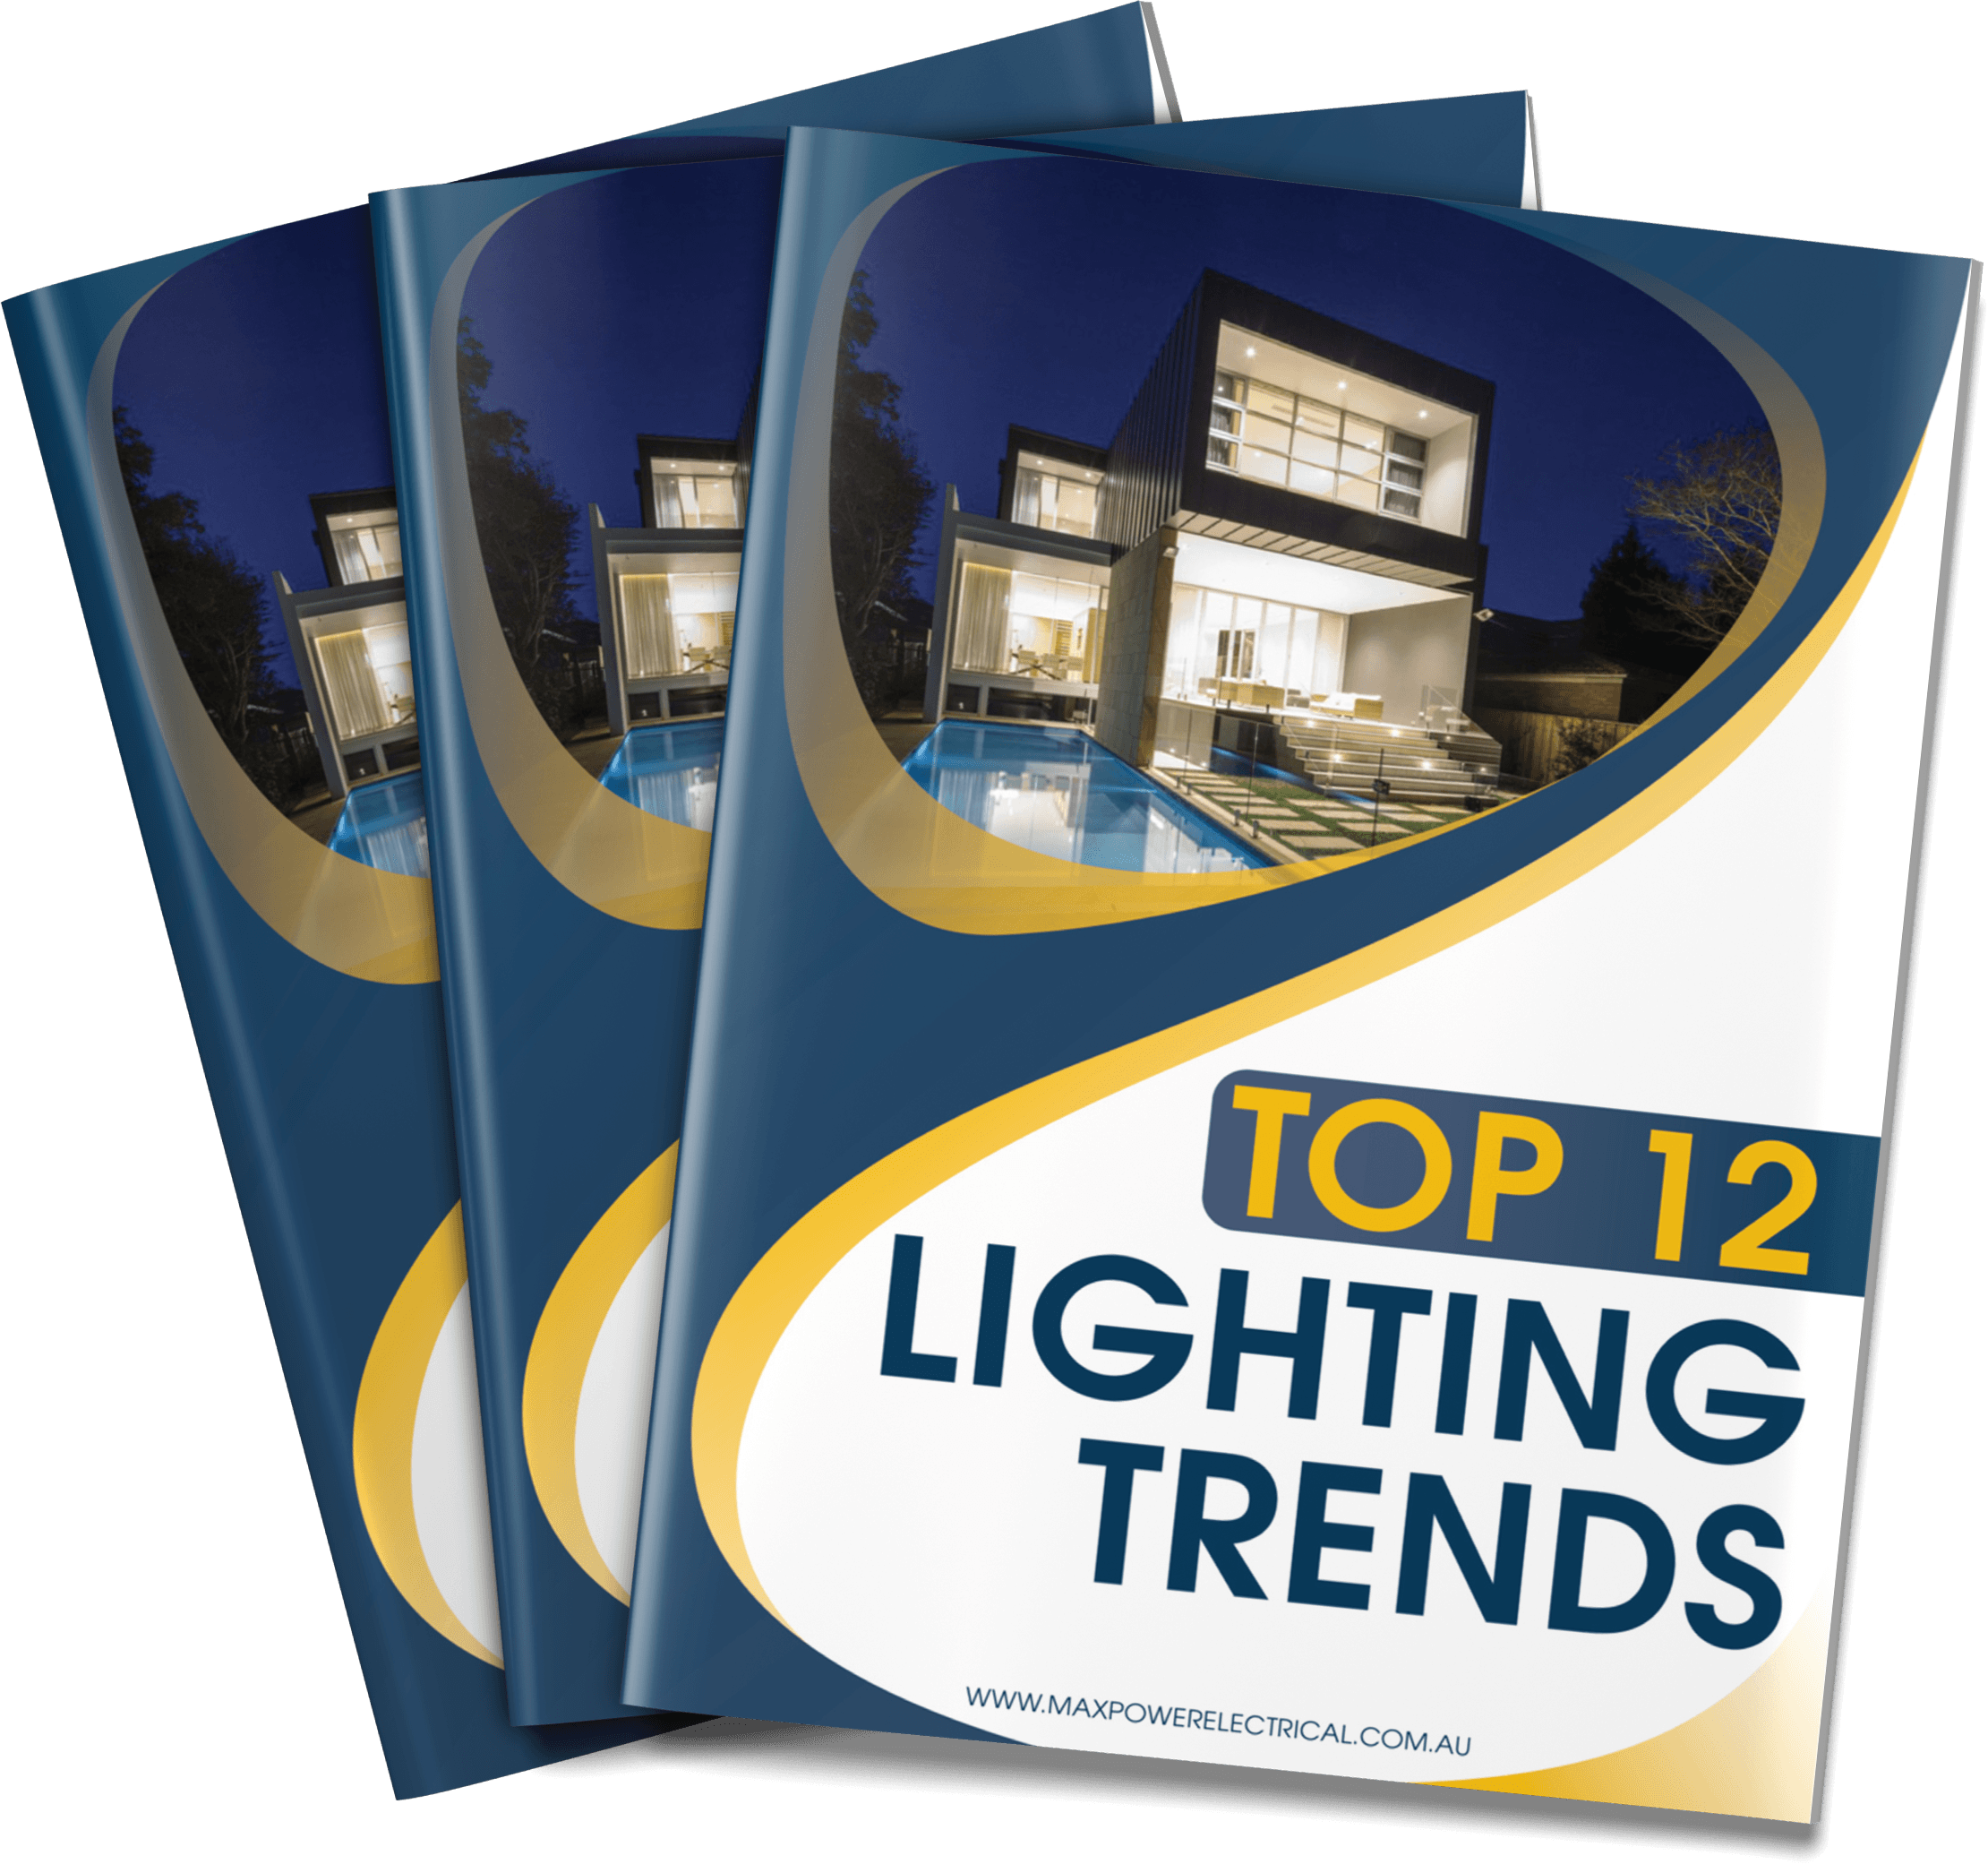 Top 12 Lighting Trends